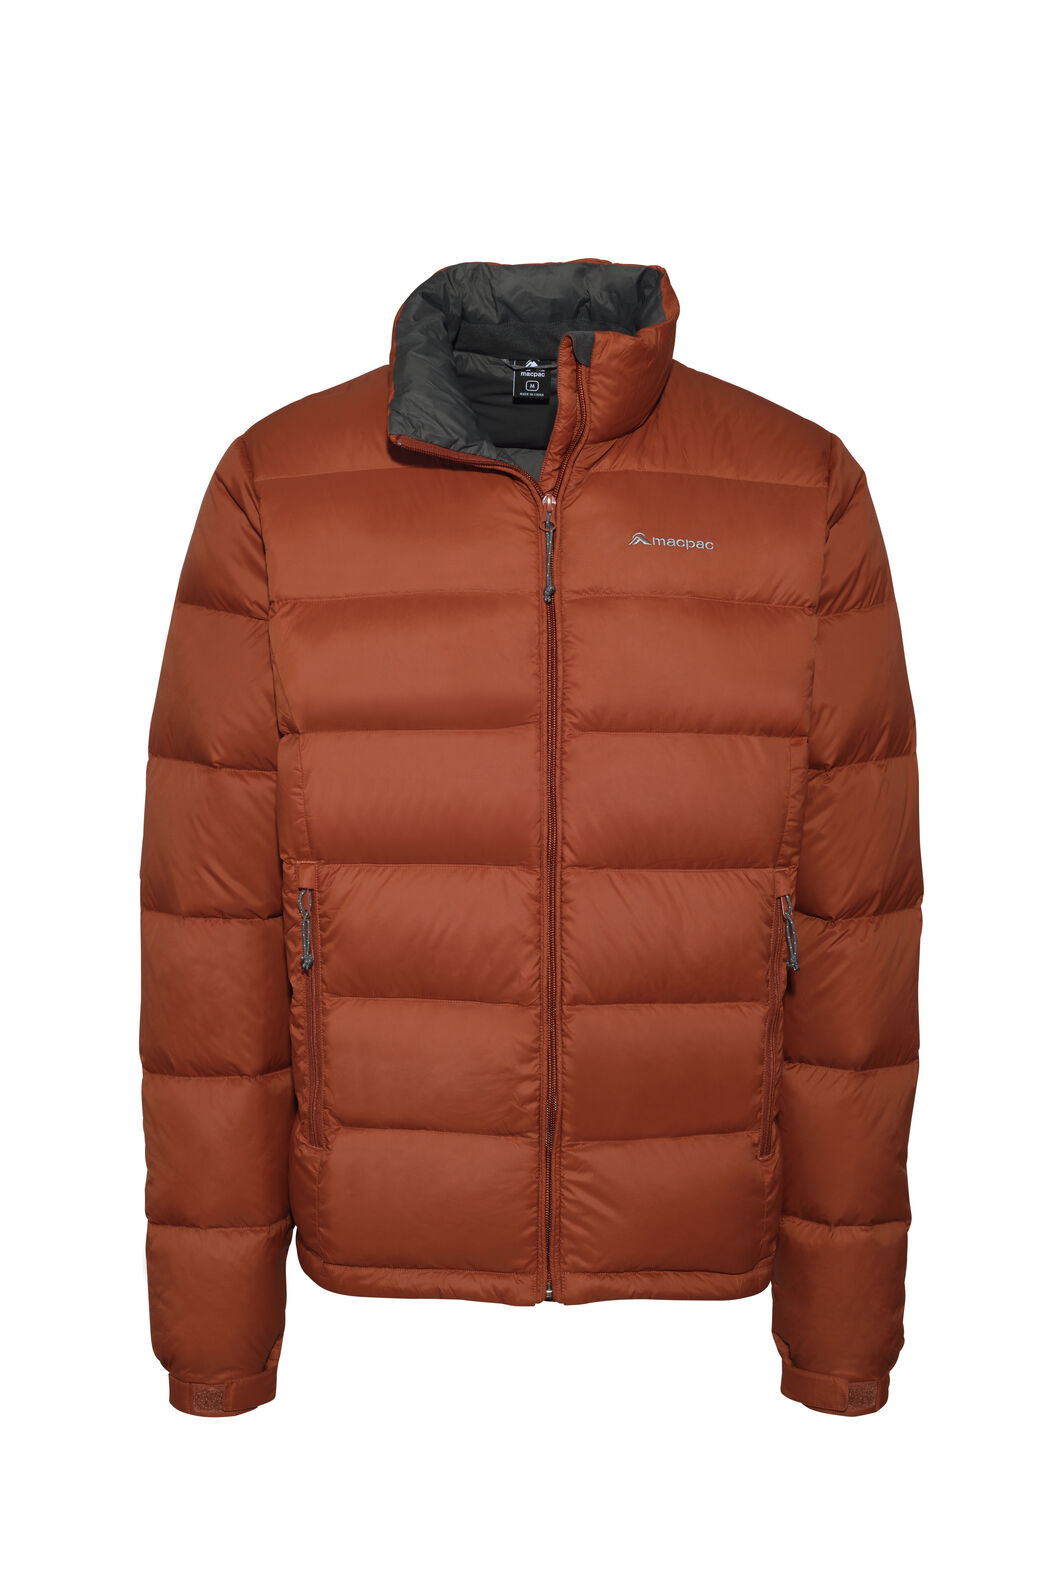 Macpac Halo Down Jacket — Men's, Burnt Henna, hi-res